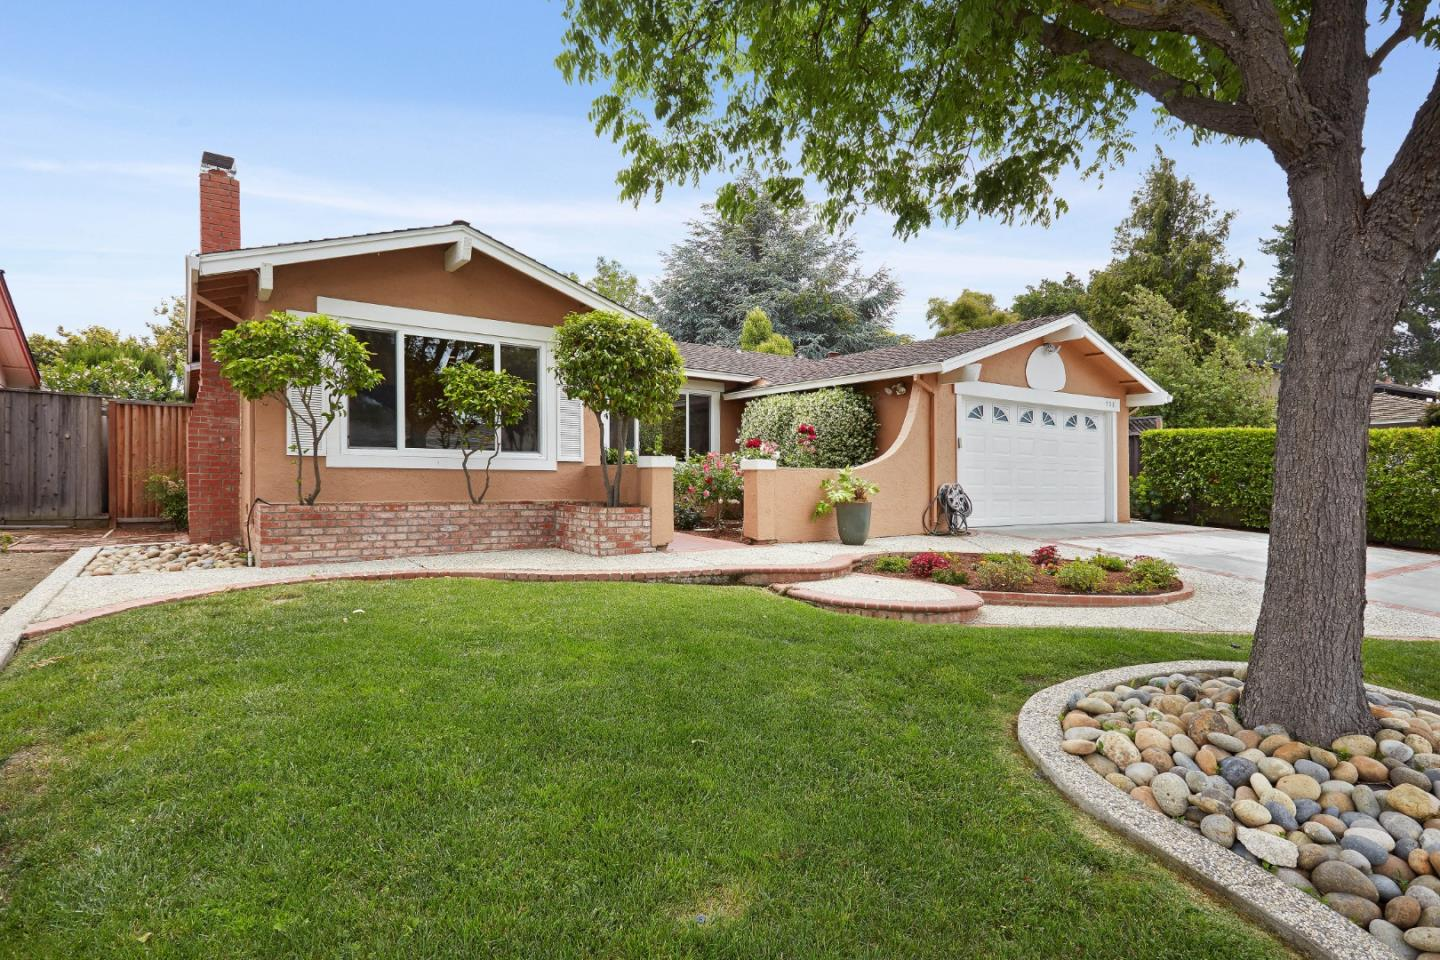 Detail Gallery Image 1 of 1 For 908 Bluebonnet Dr, Sunnyvale, CA 94086 - 4 Beds   2 Baths